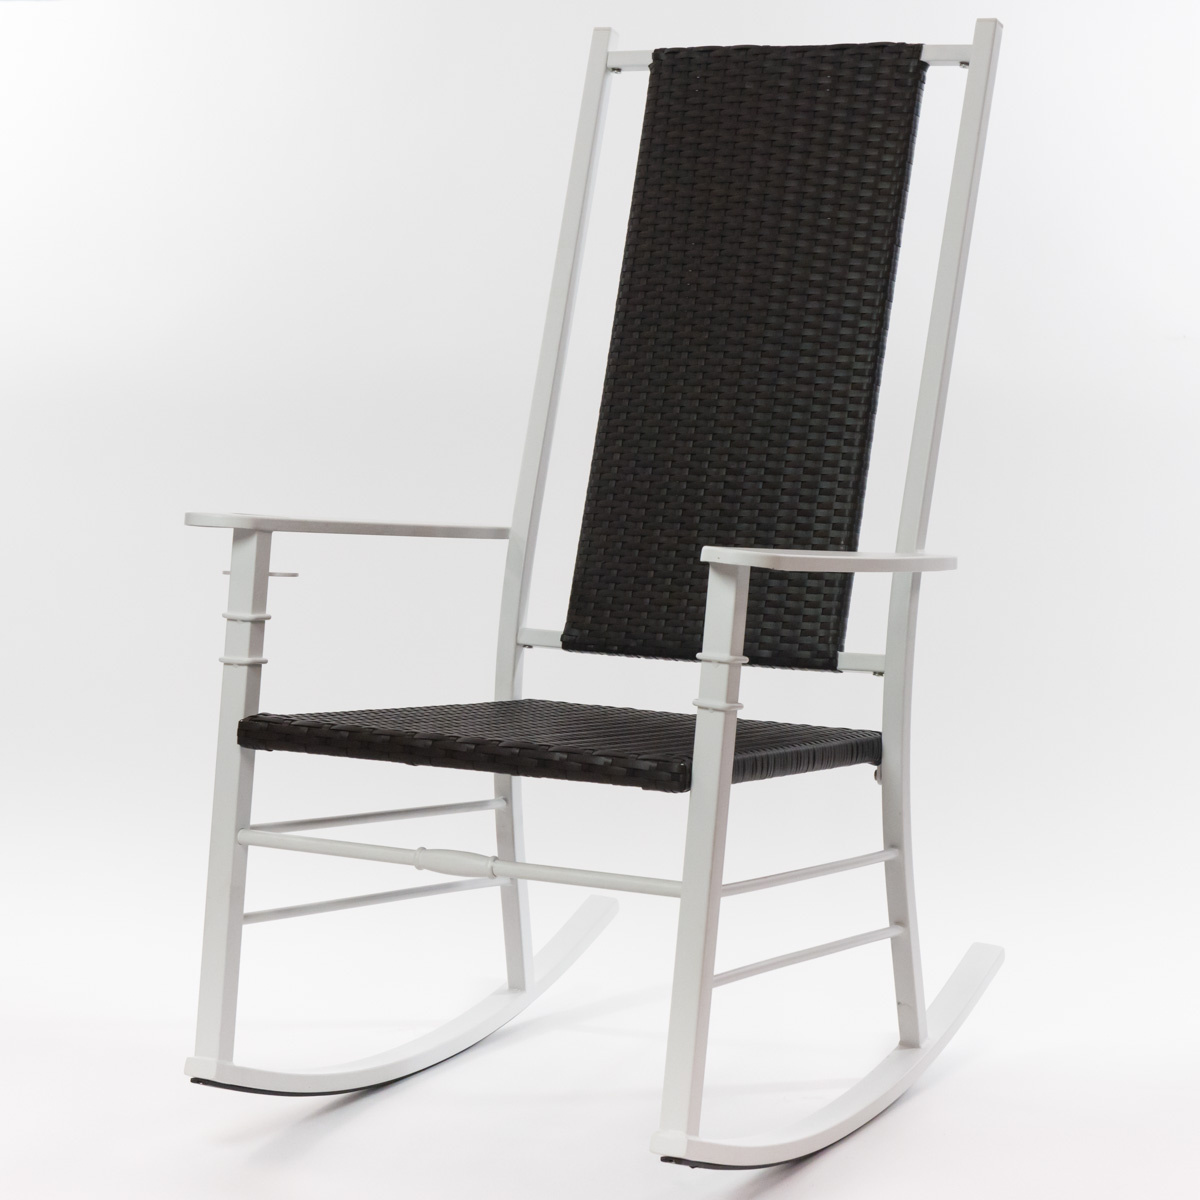 White Palm Harbor Wicker Rocking Chair